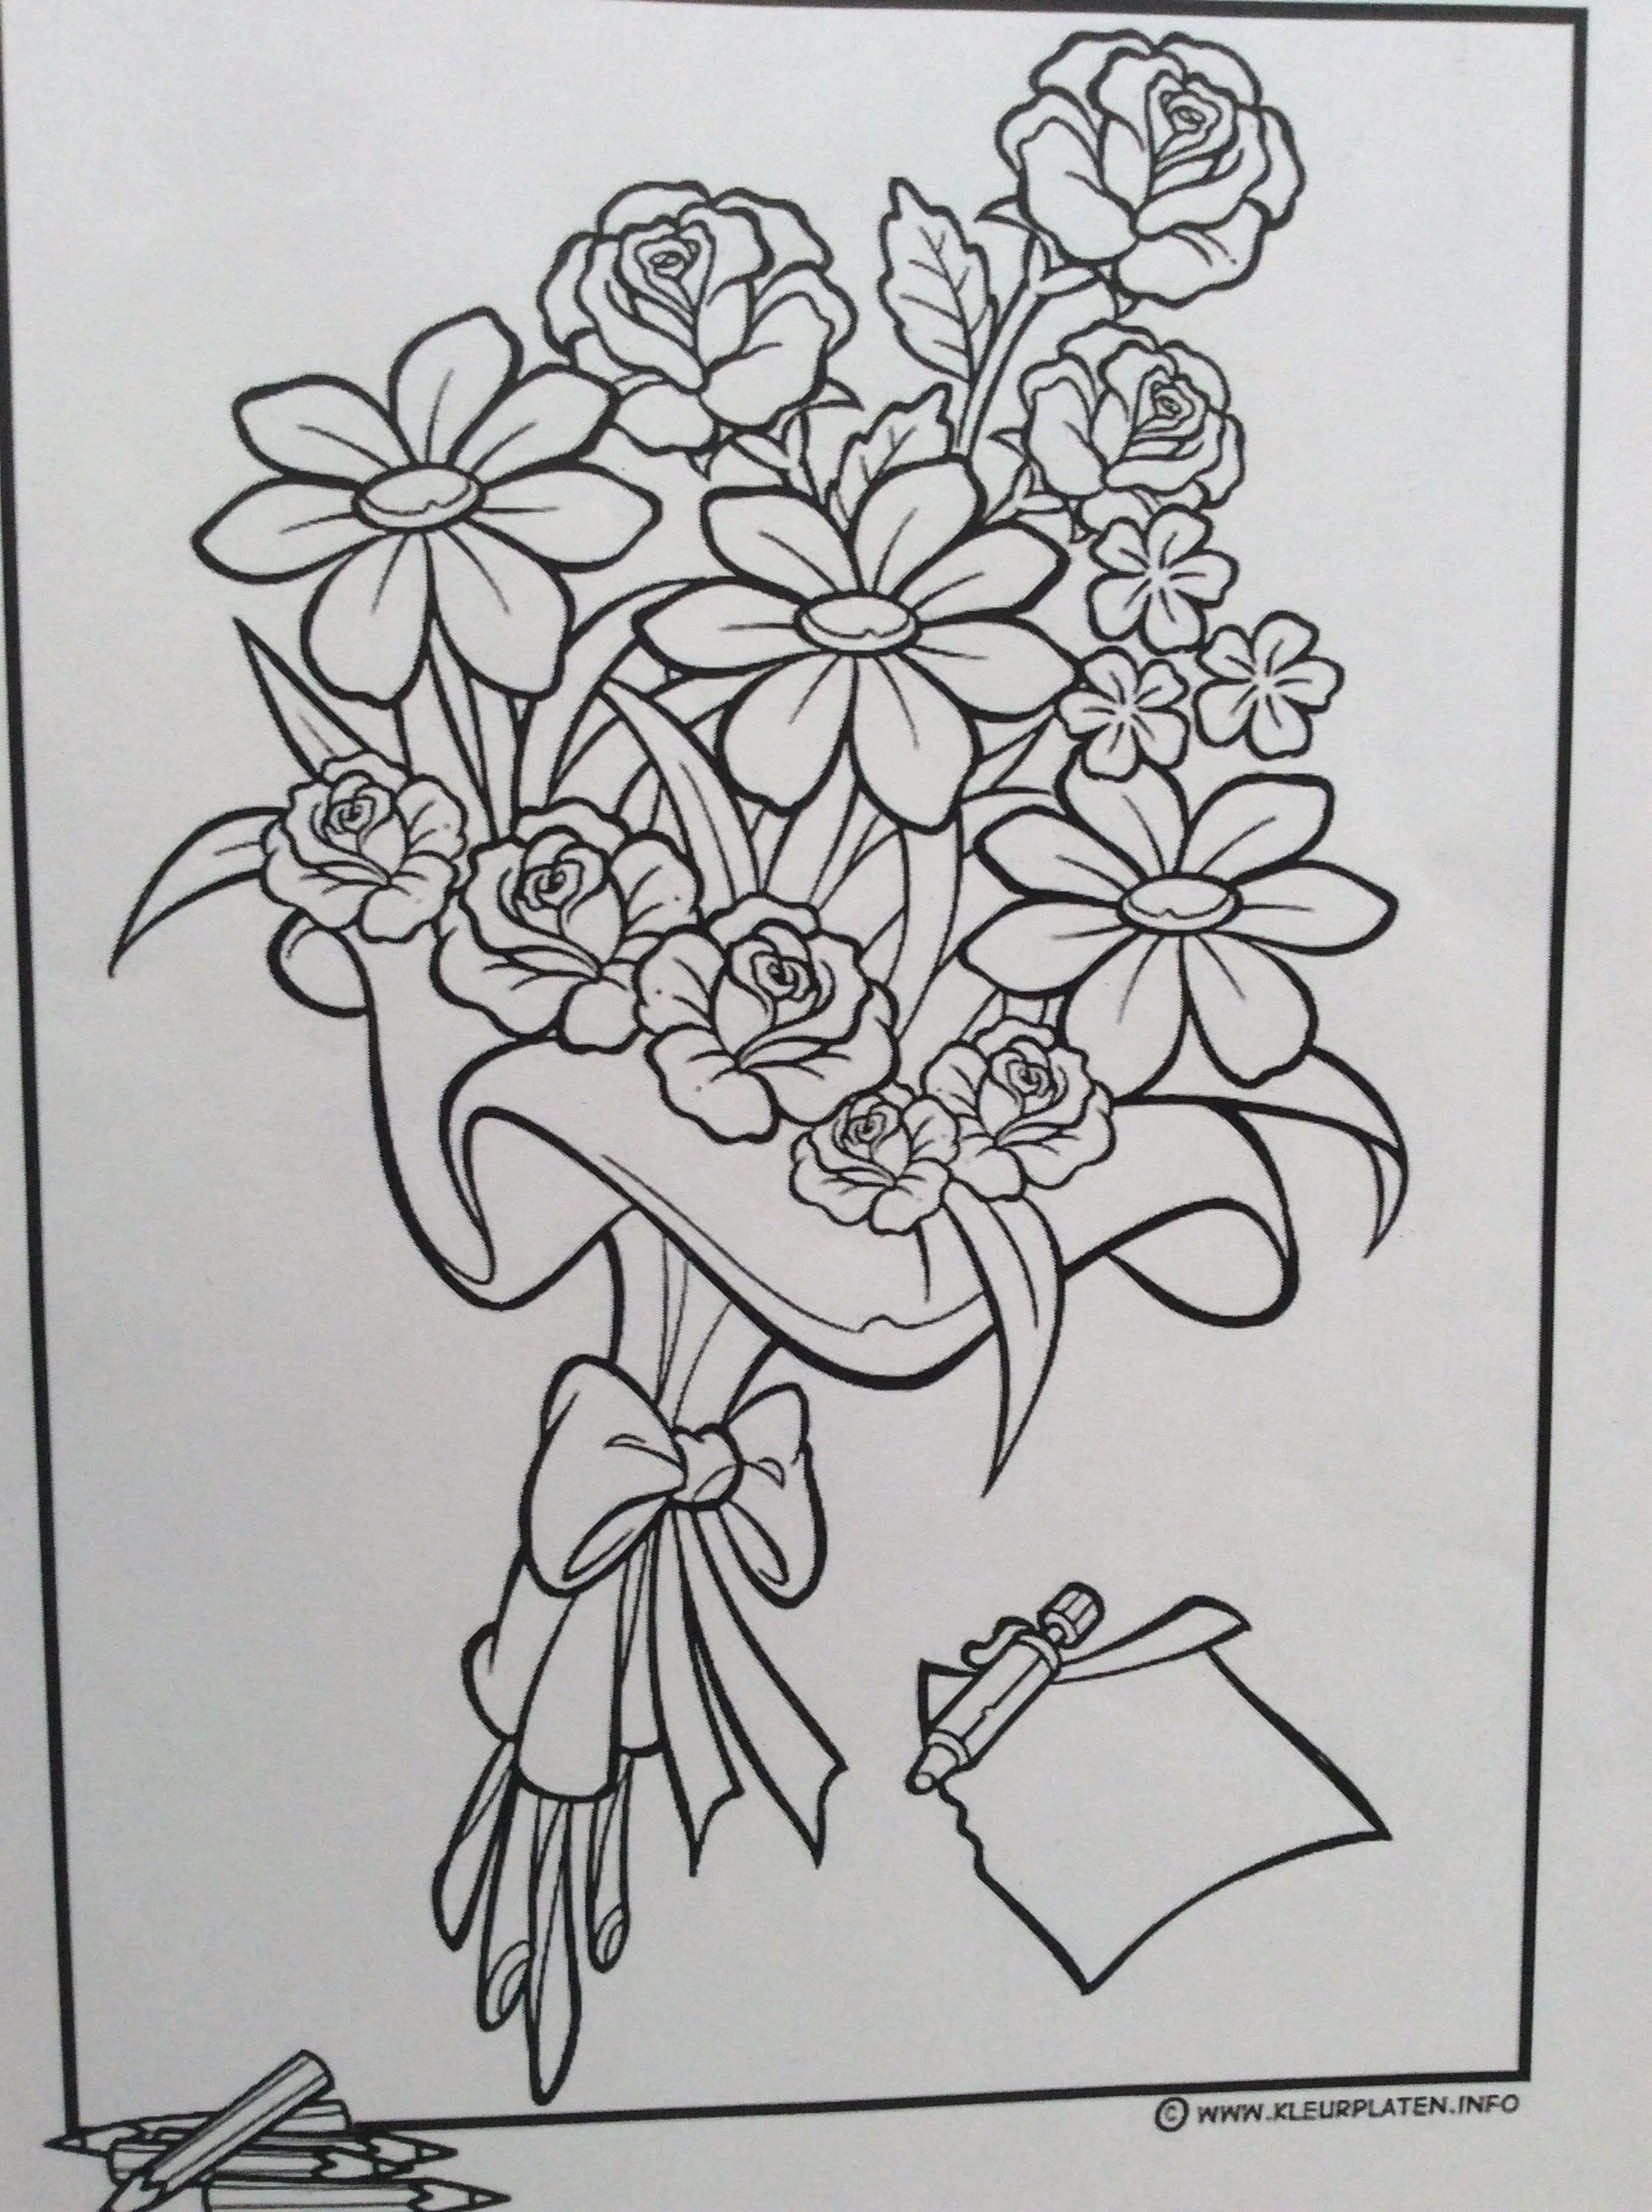 Pin By Eva On Moeder En Vaderdag Coloring Pages Flower Painting Colorful Flowers